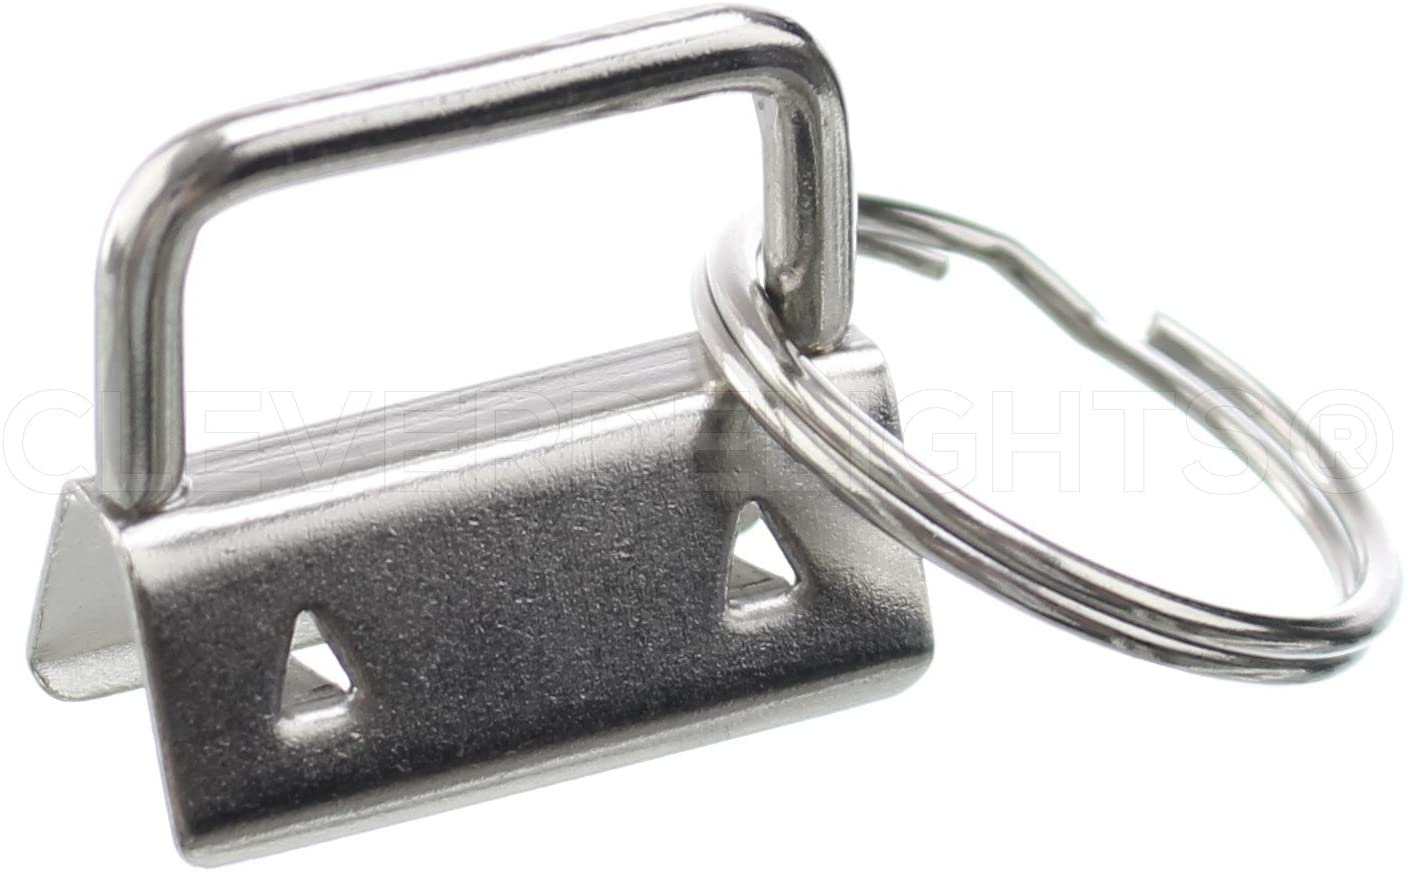 50 Pack - CleverDelights 1 Key Fob Hardware Set with Key Rings - for Lanyards Key Chain Wristlets - 1 Inch